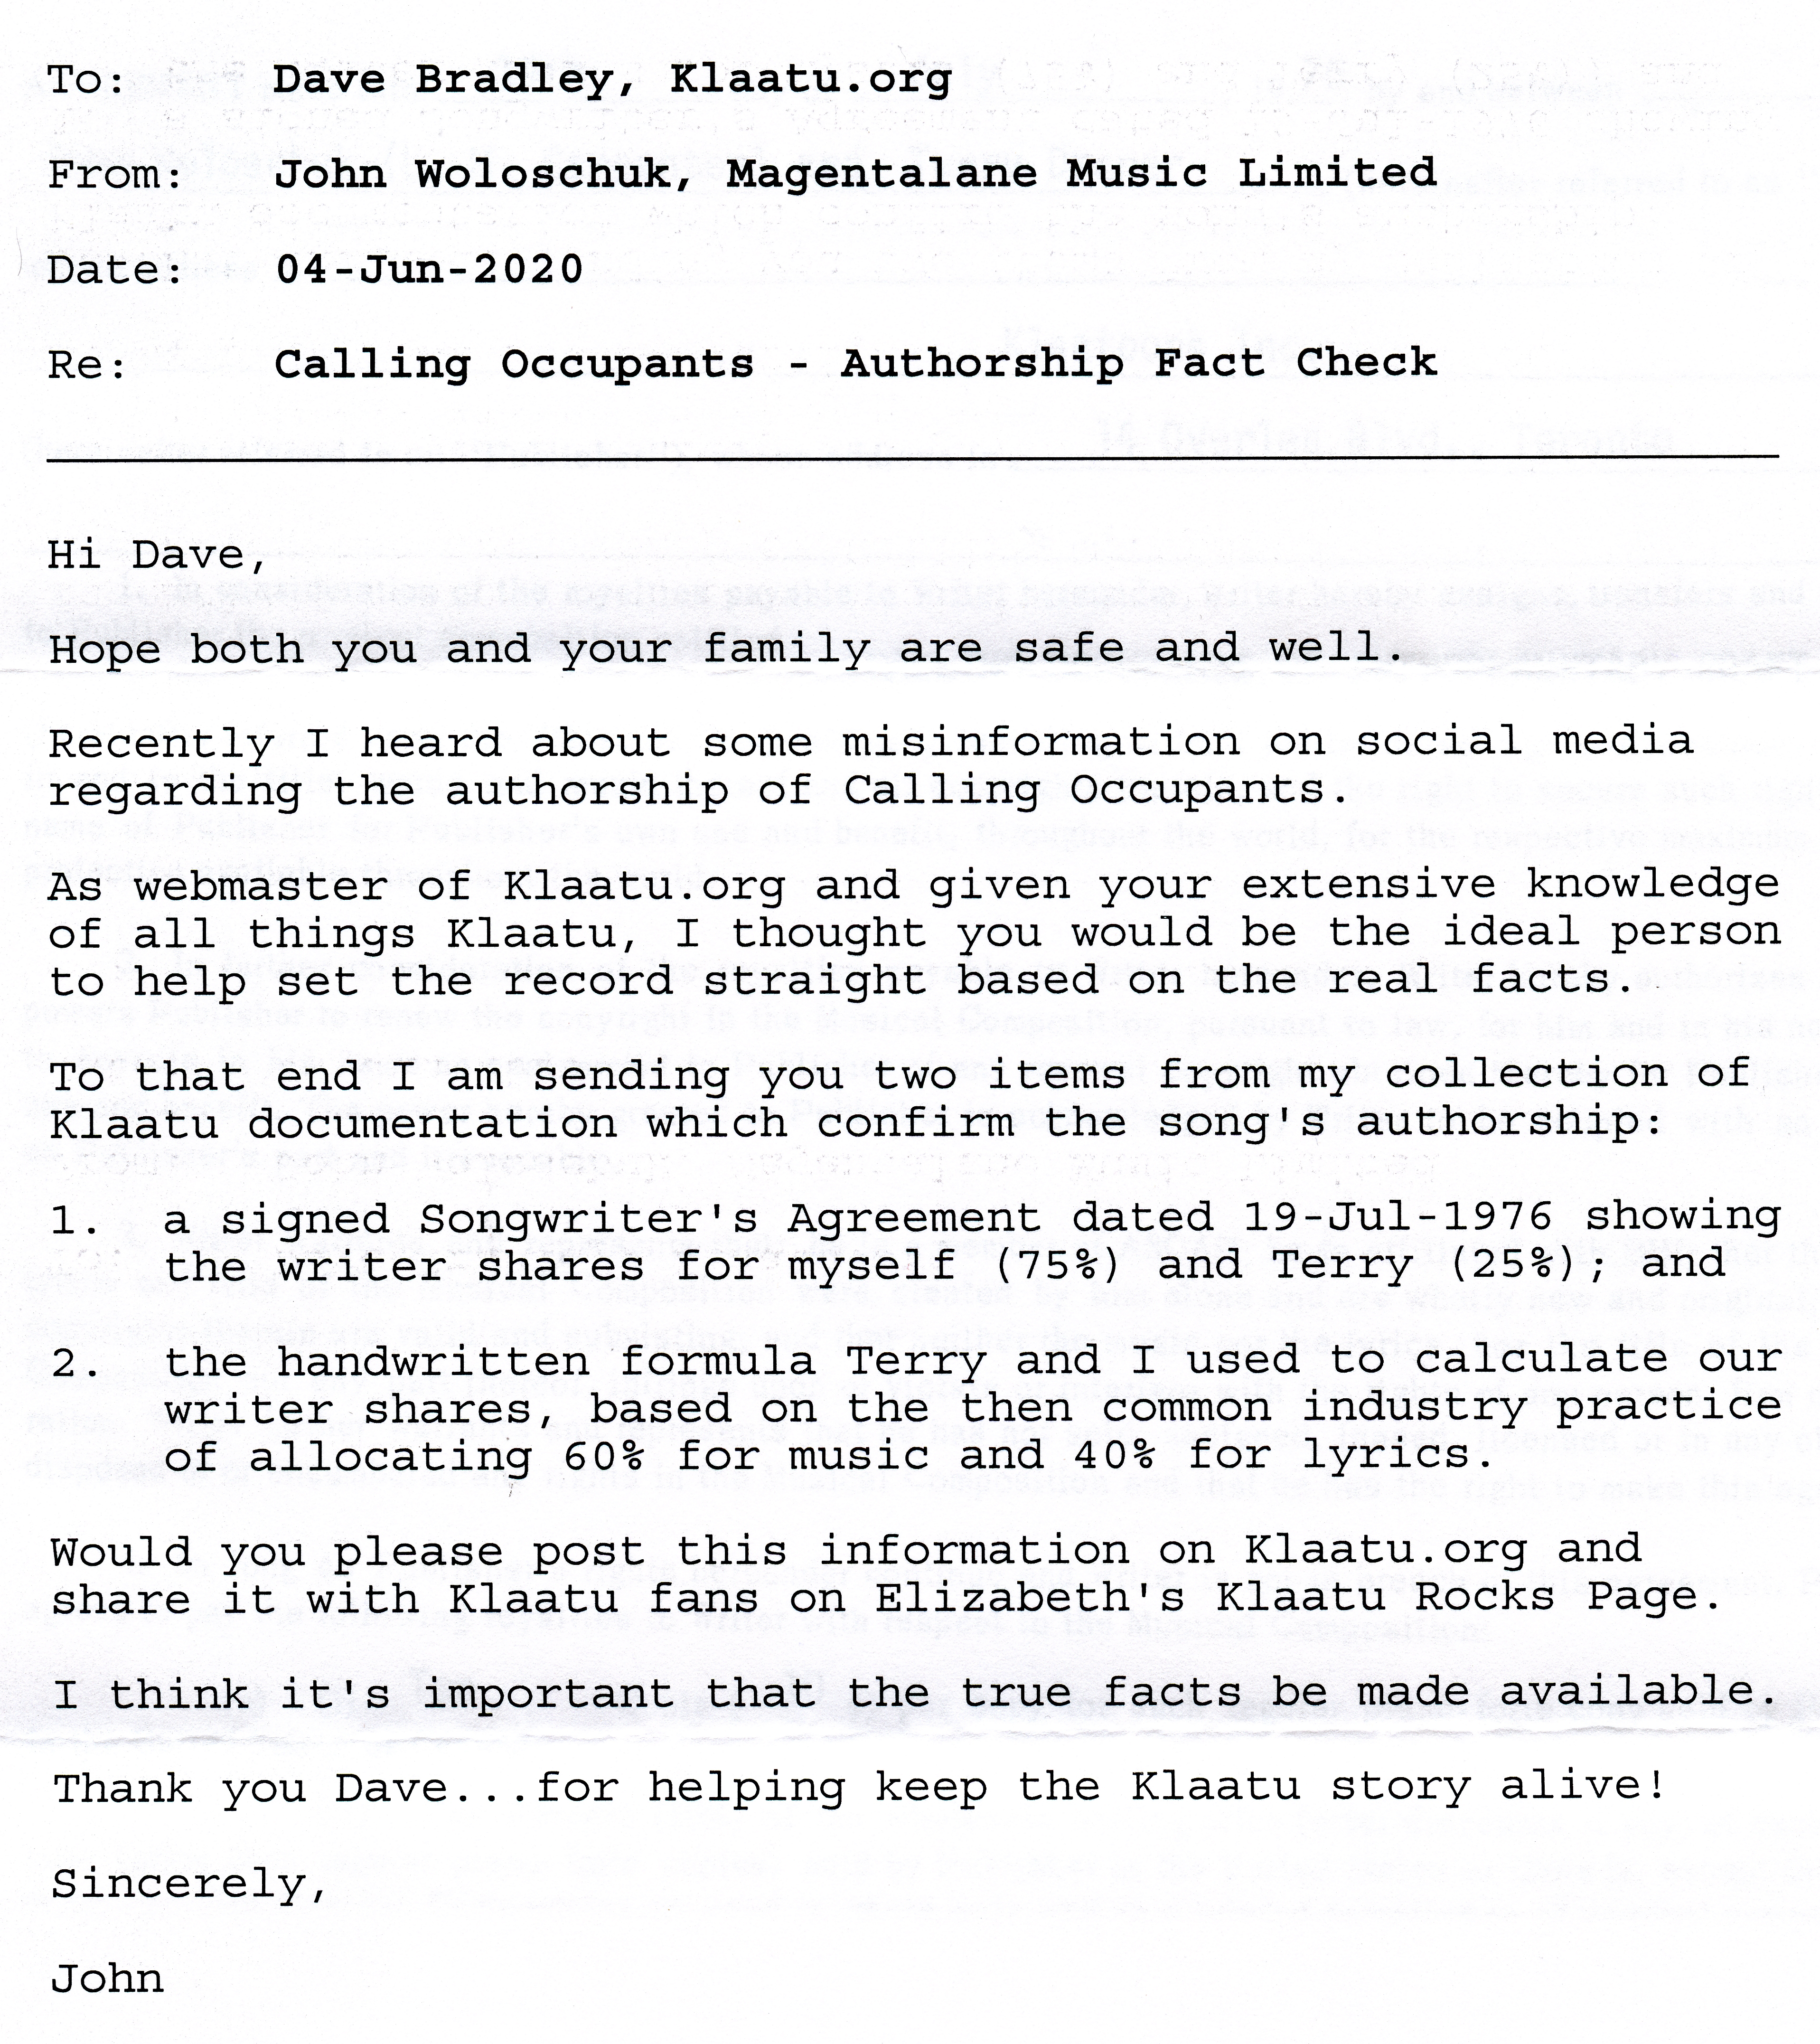 This is a scanned image of the letter I received from John Woloschuk.